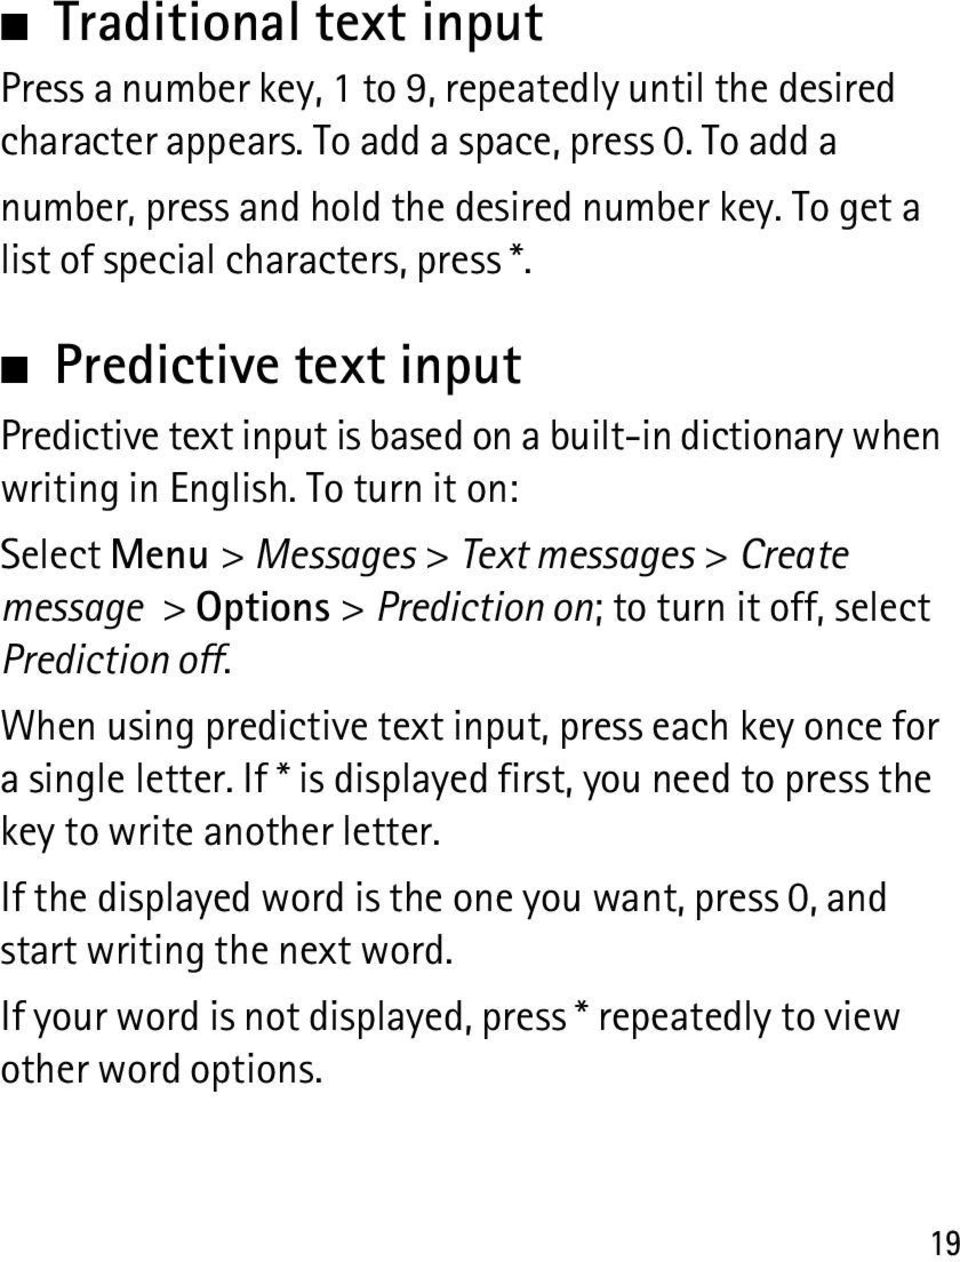 To turn it on: Select Menu > Messages > Text messages > Create message > Options > Prediction on; to turn it off, select Prediction off.